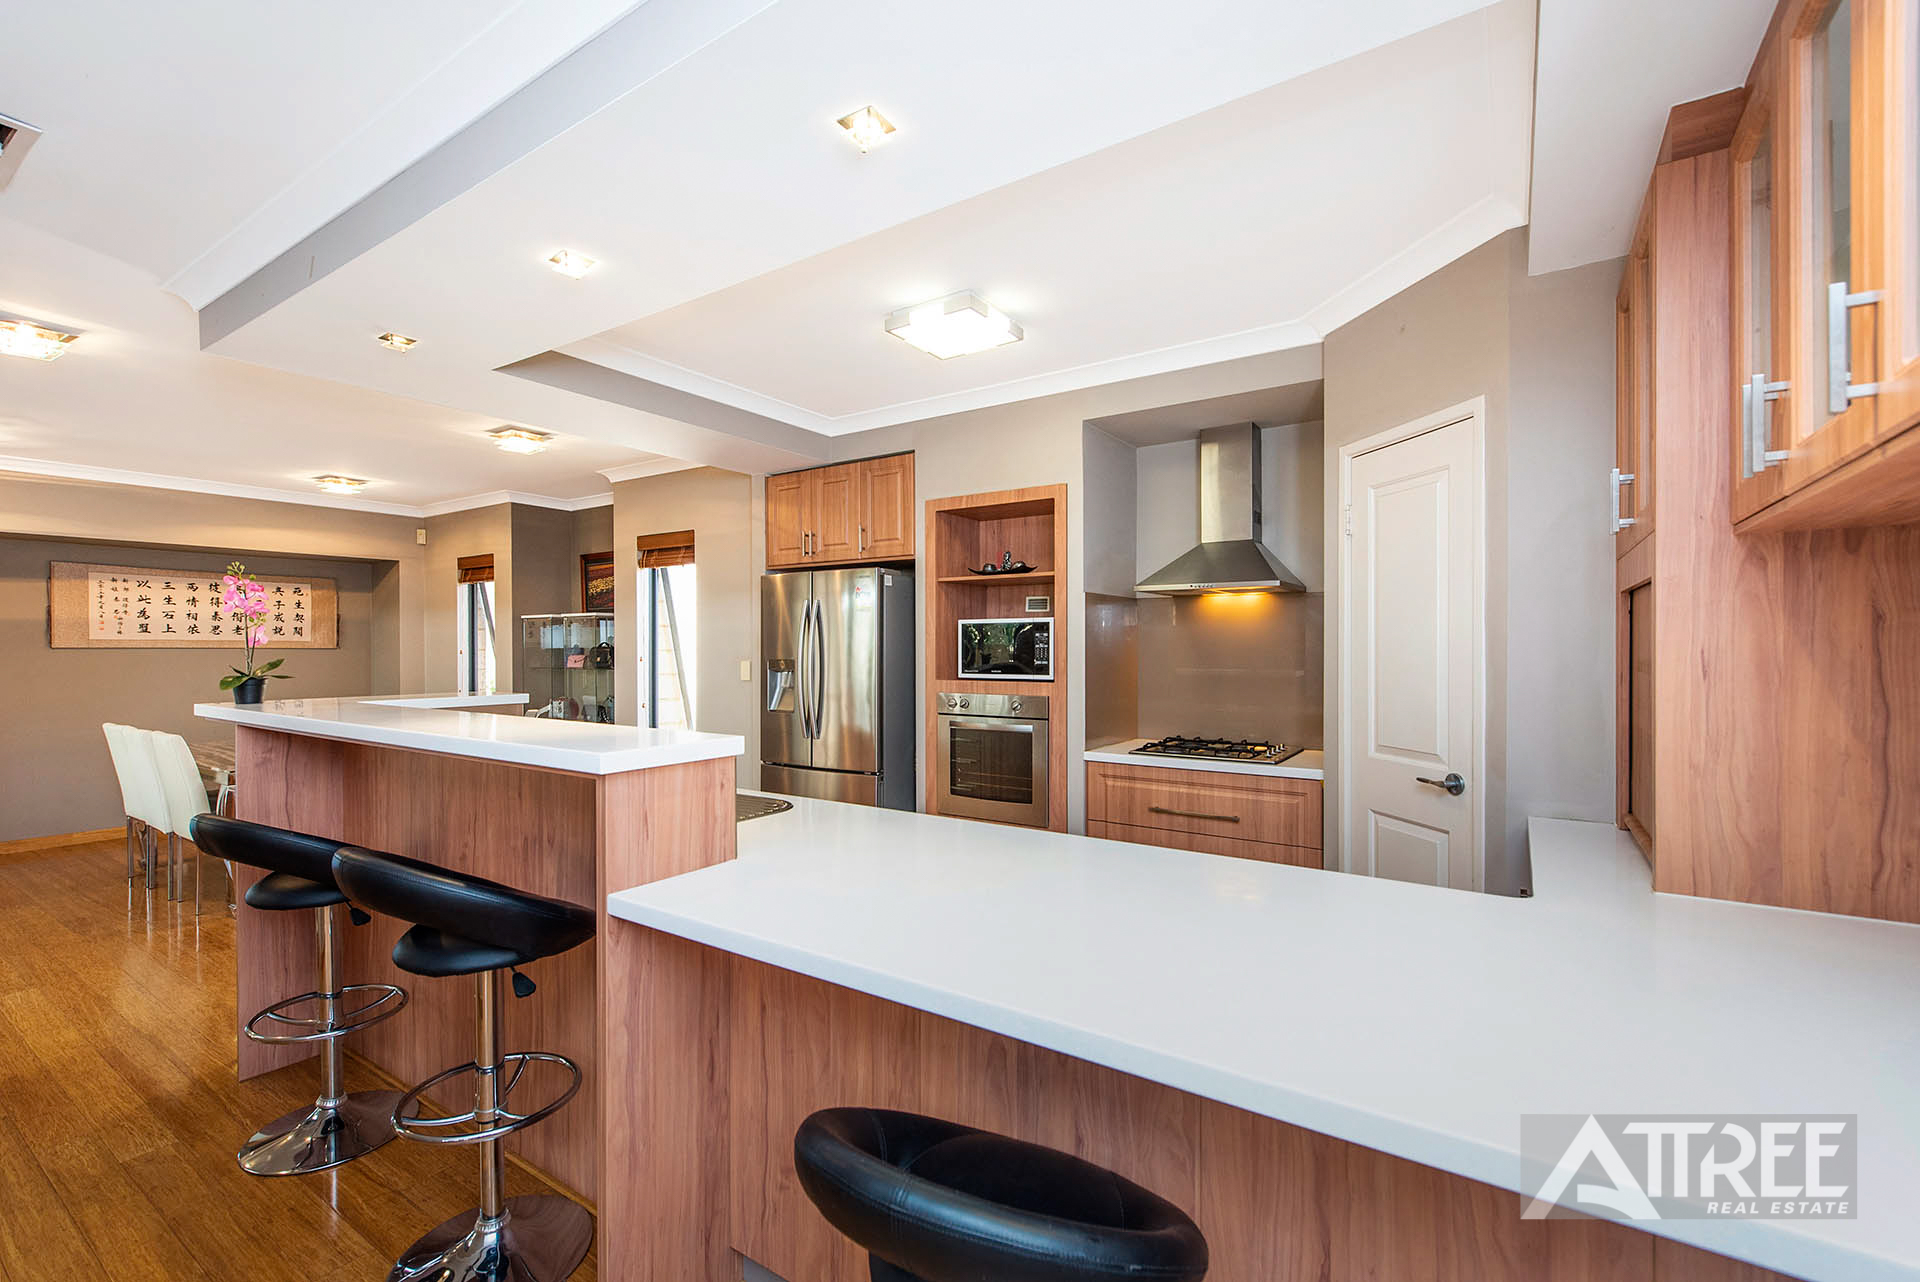 Property for sale in CANNING VALE, 40 Admiralty Road : Attree Real Estate